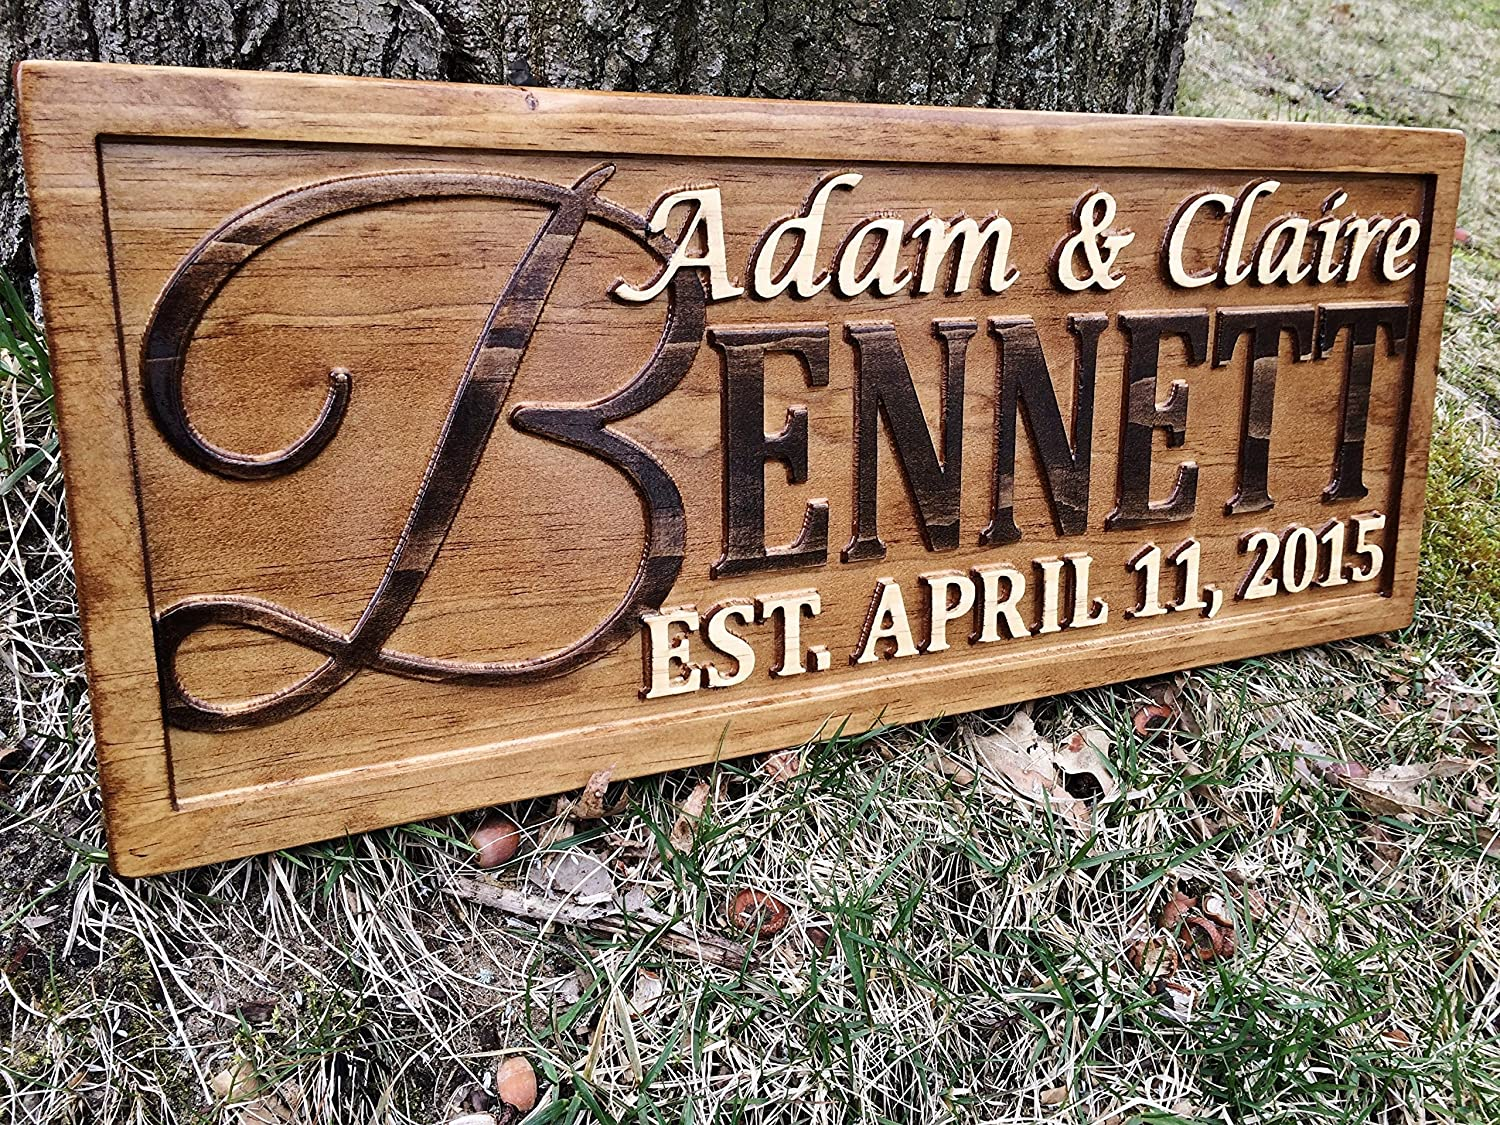 amazoncom personalized family name sign personalized wedding gifts wall art rustic home decor custom carved wooden signs couples 5 year wood anniversary - Wood Sign Design Ideas